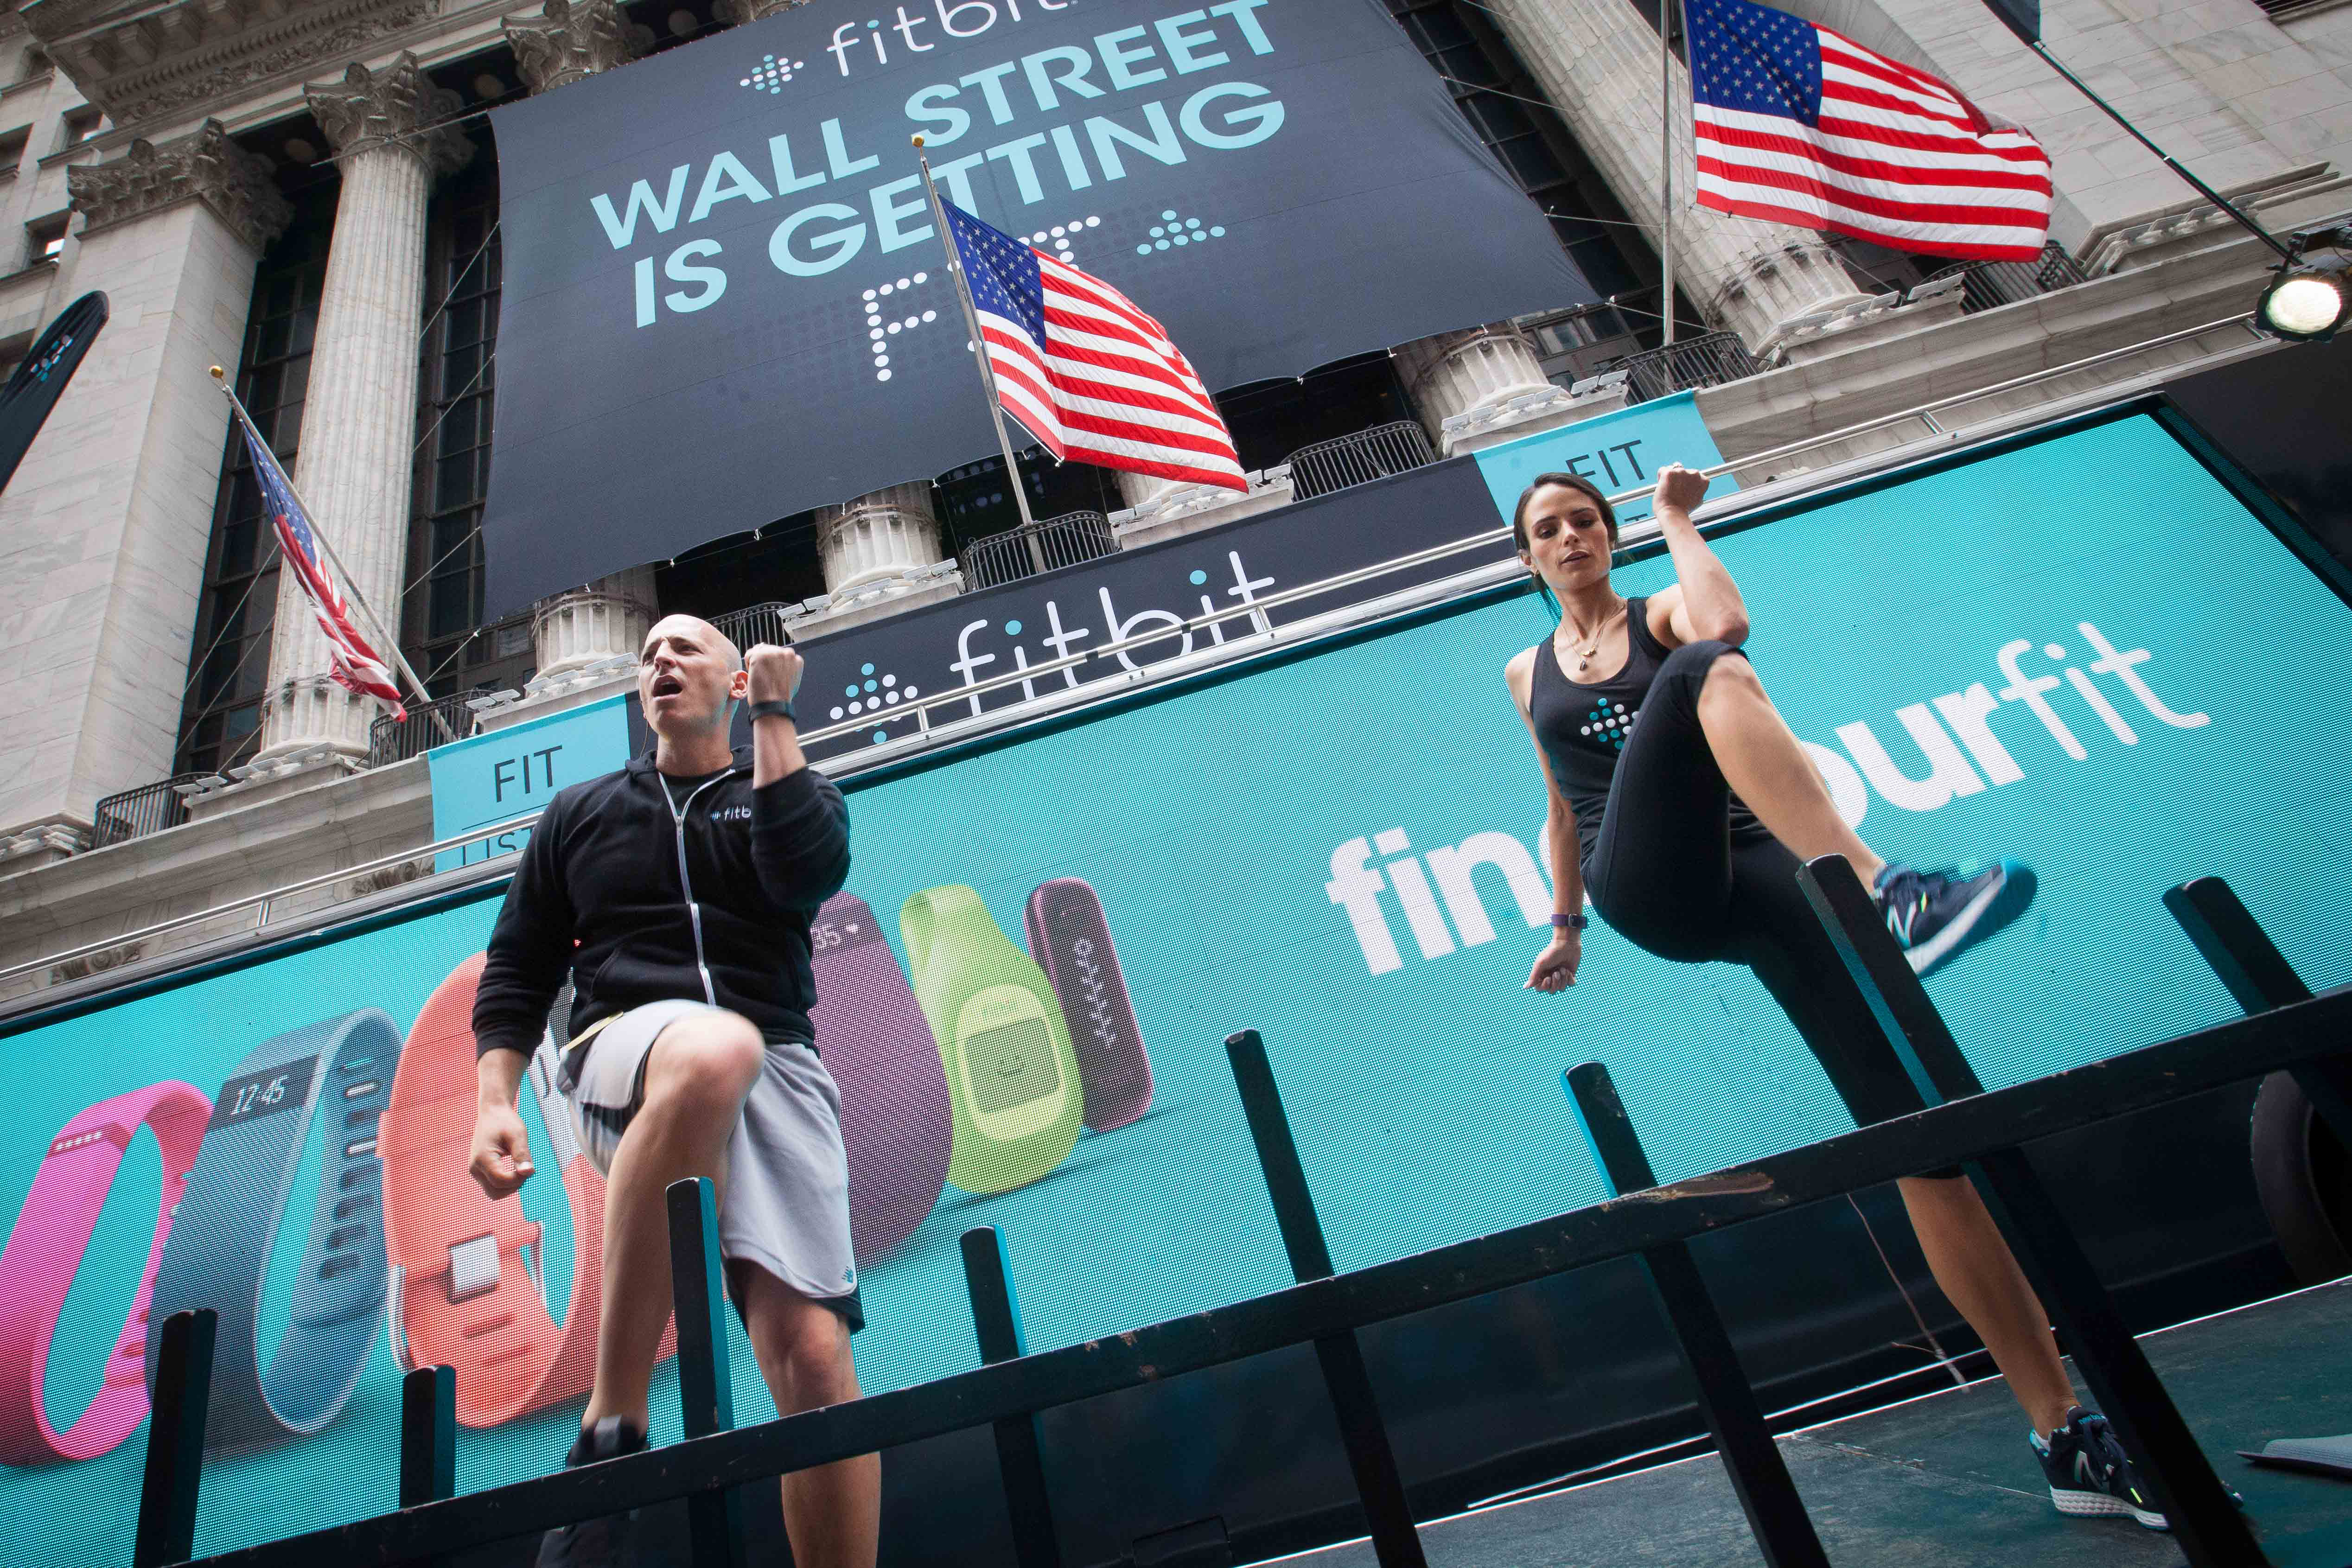 At the fitbit ipo celebration at new york stock exchange on thursday - Nyse Welcomes Fitbit On Its First Day As A Publicly Traded Company Business Wire